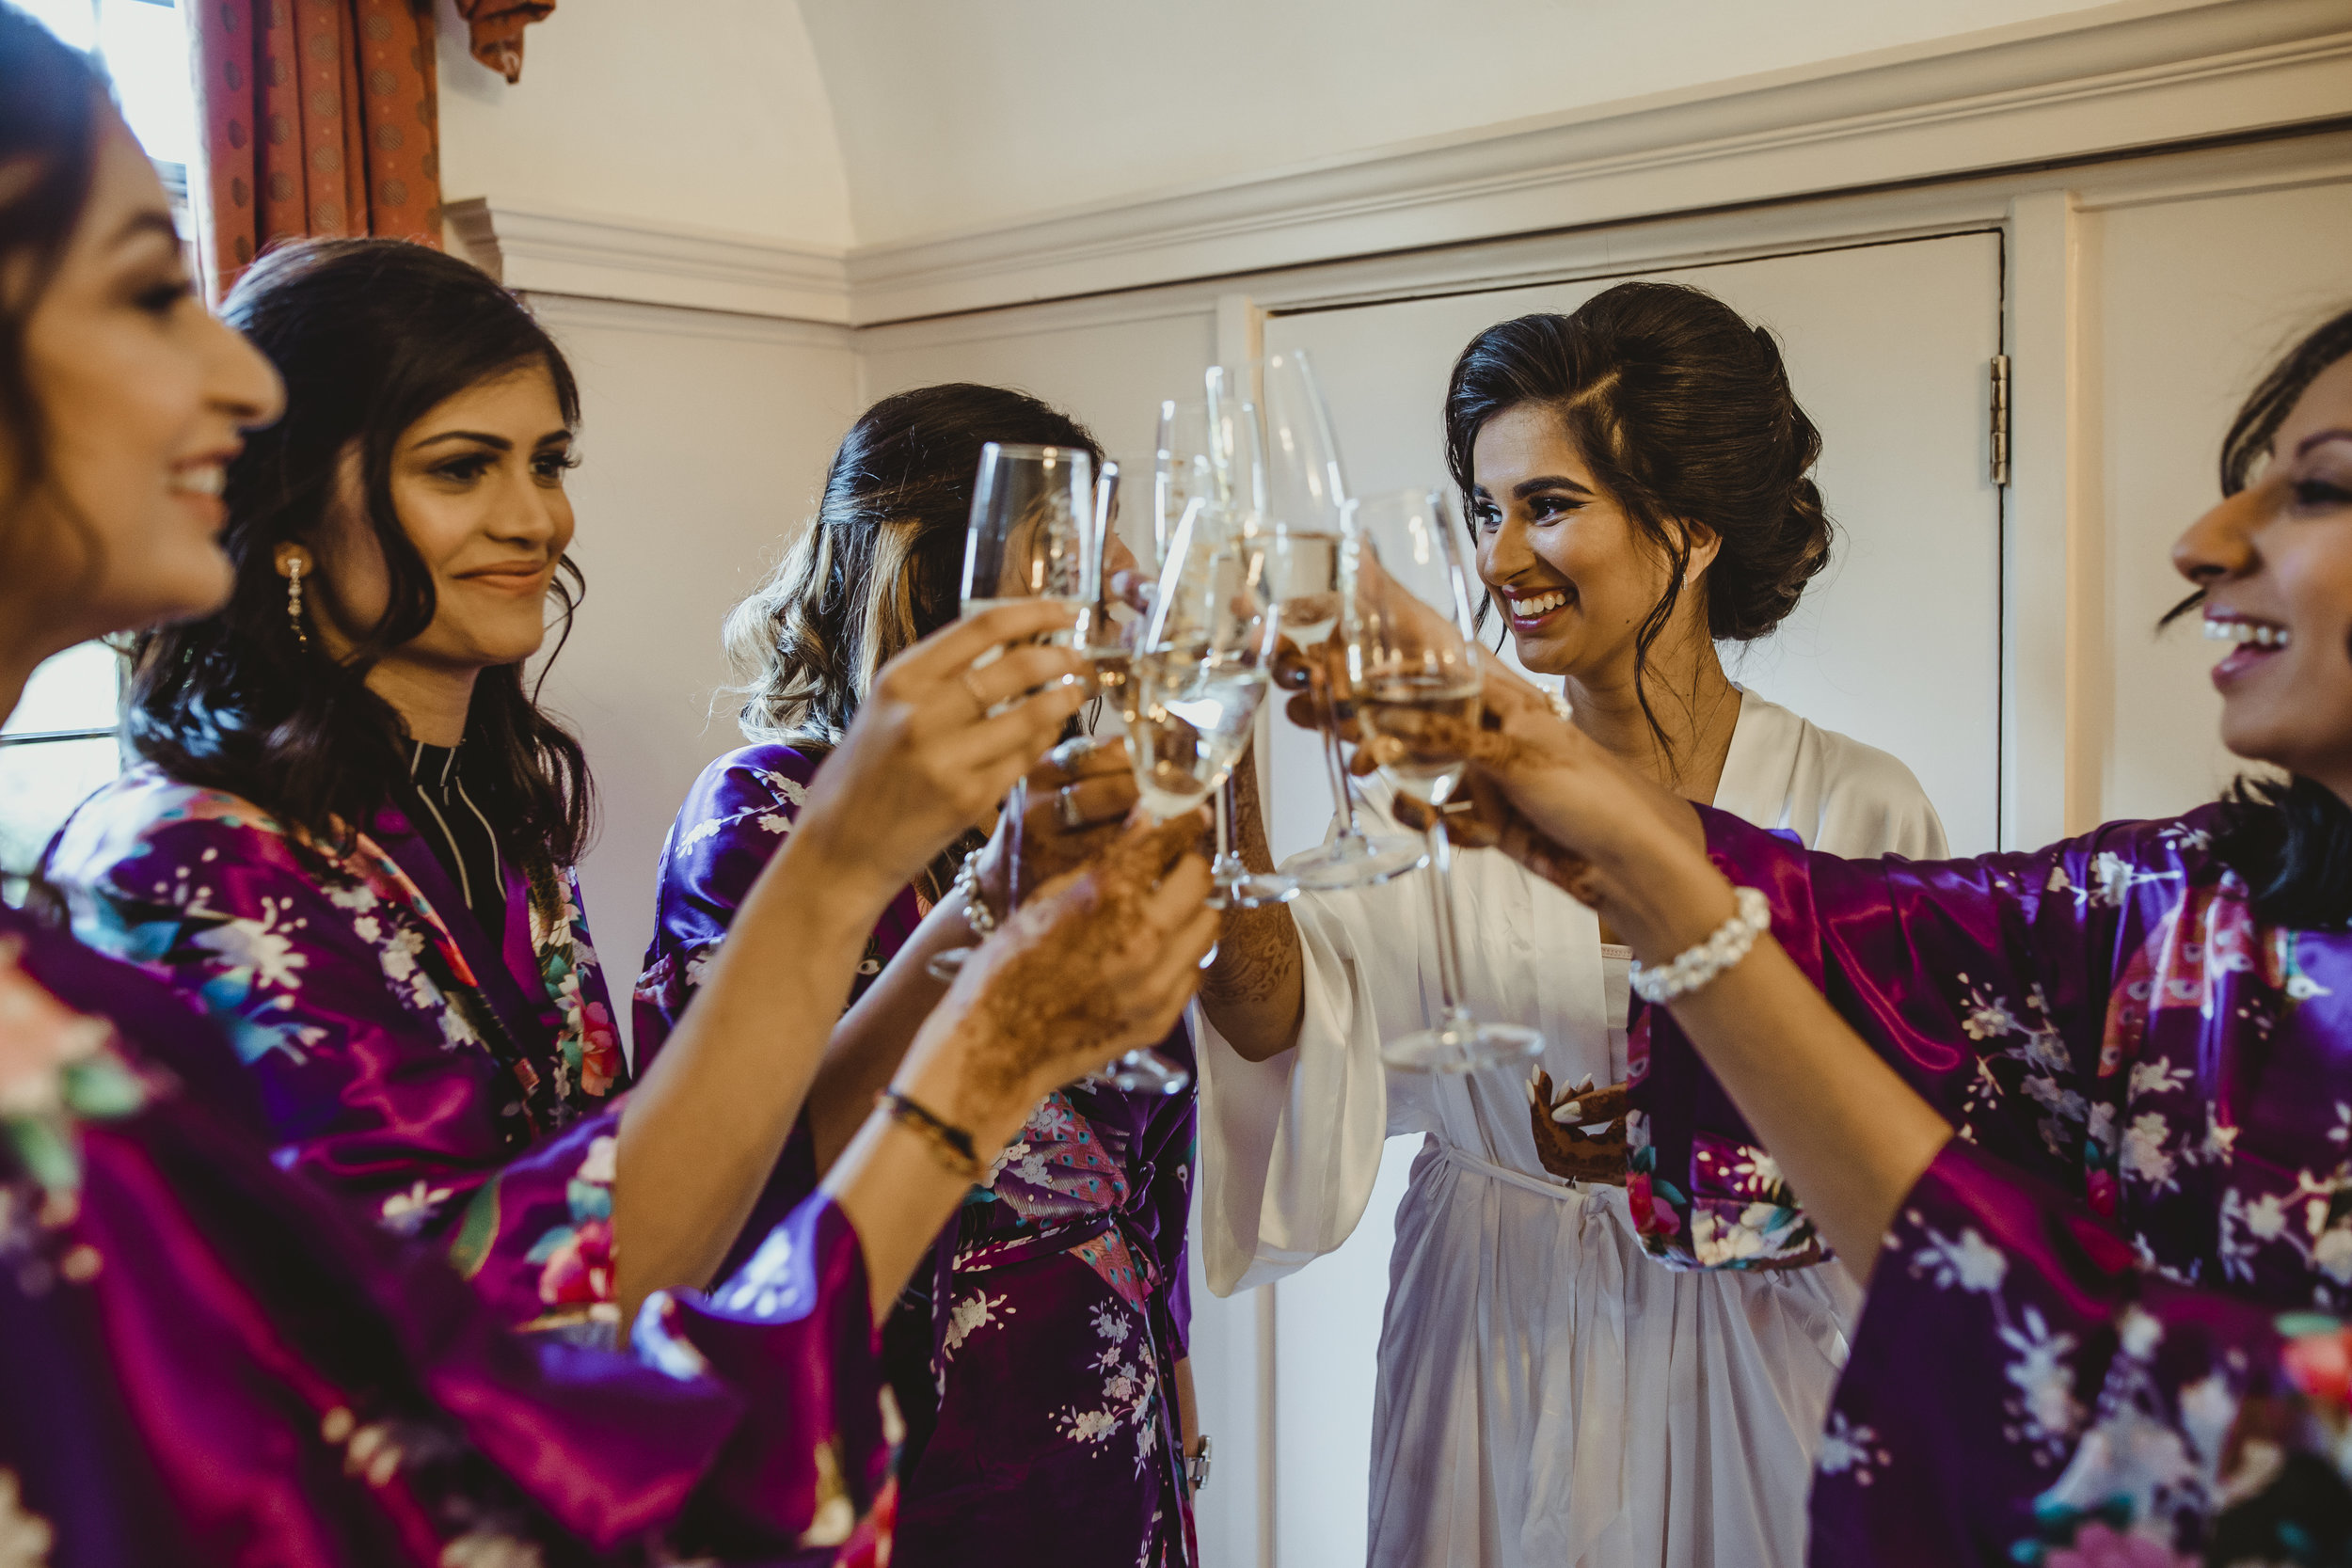 N&J_MILTON_KEYNES_WEDDING_LONDON_PHOTOGRAPHER_ASIAN_WEDDING-234.JPG